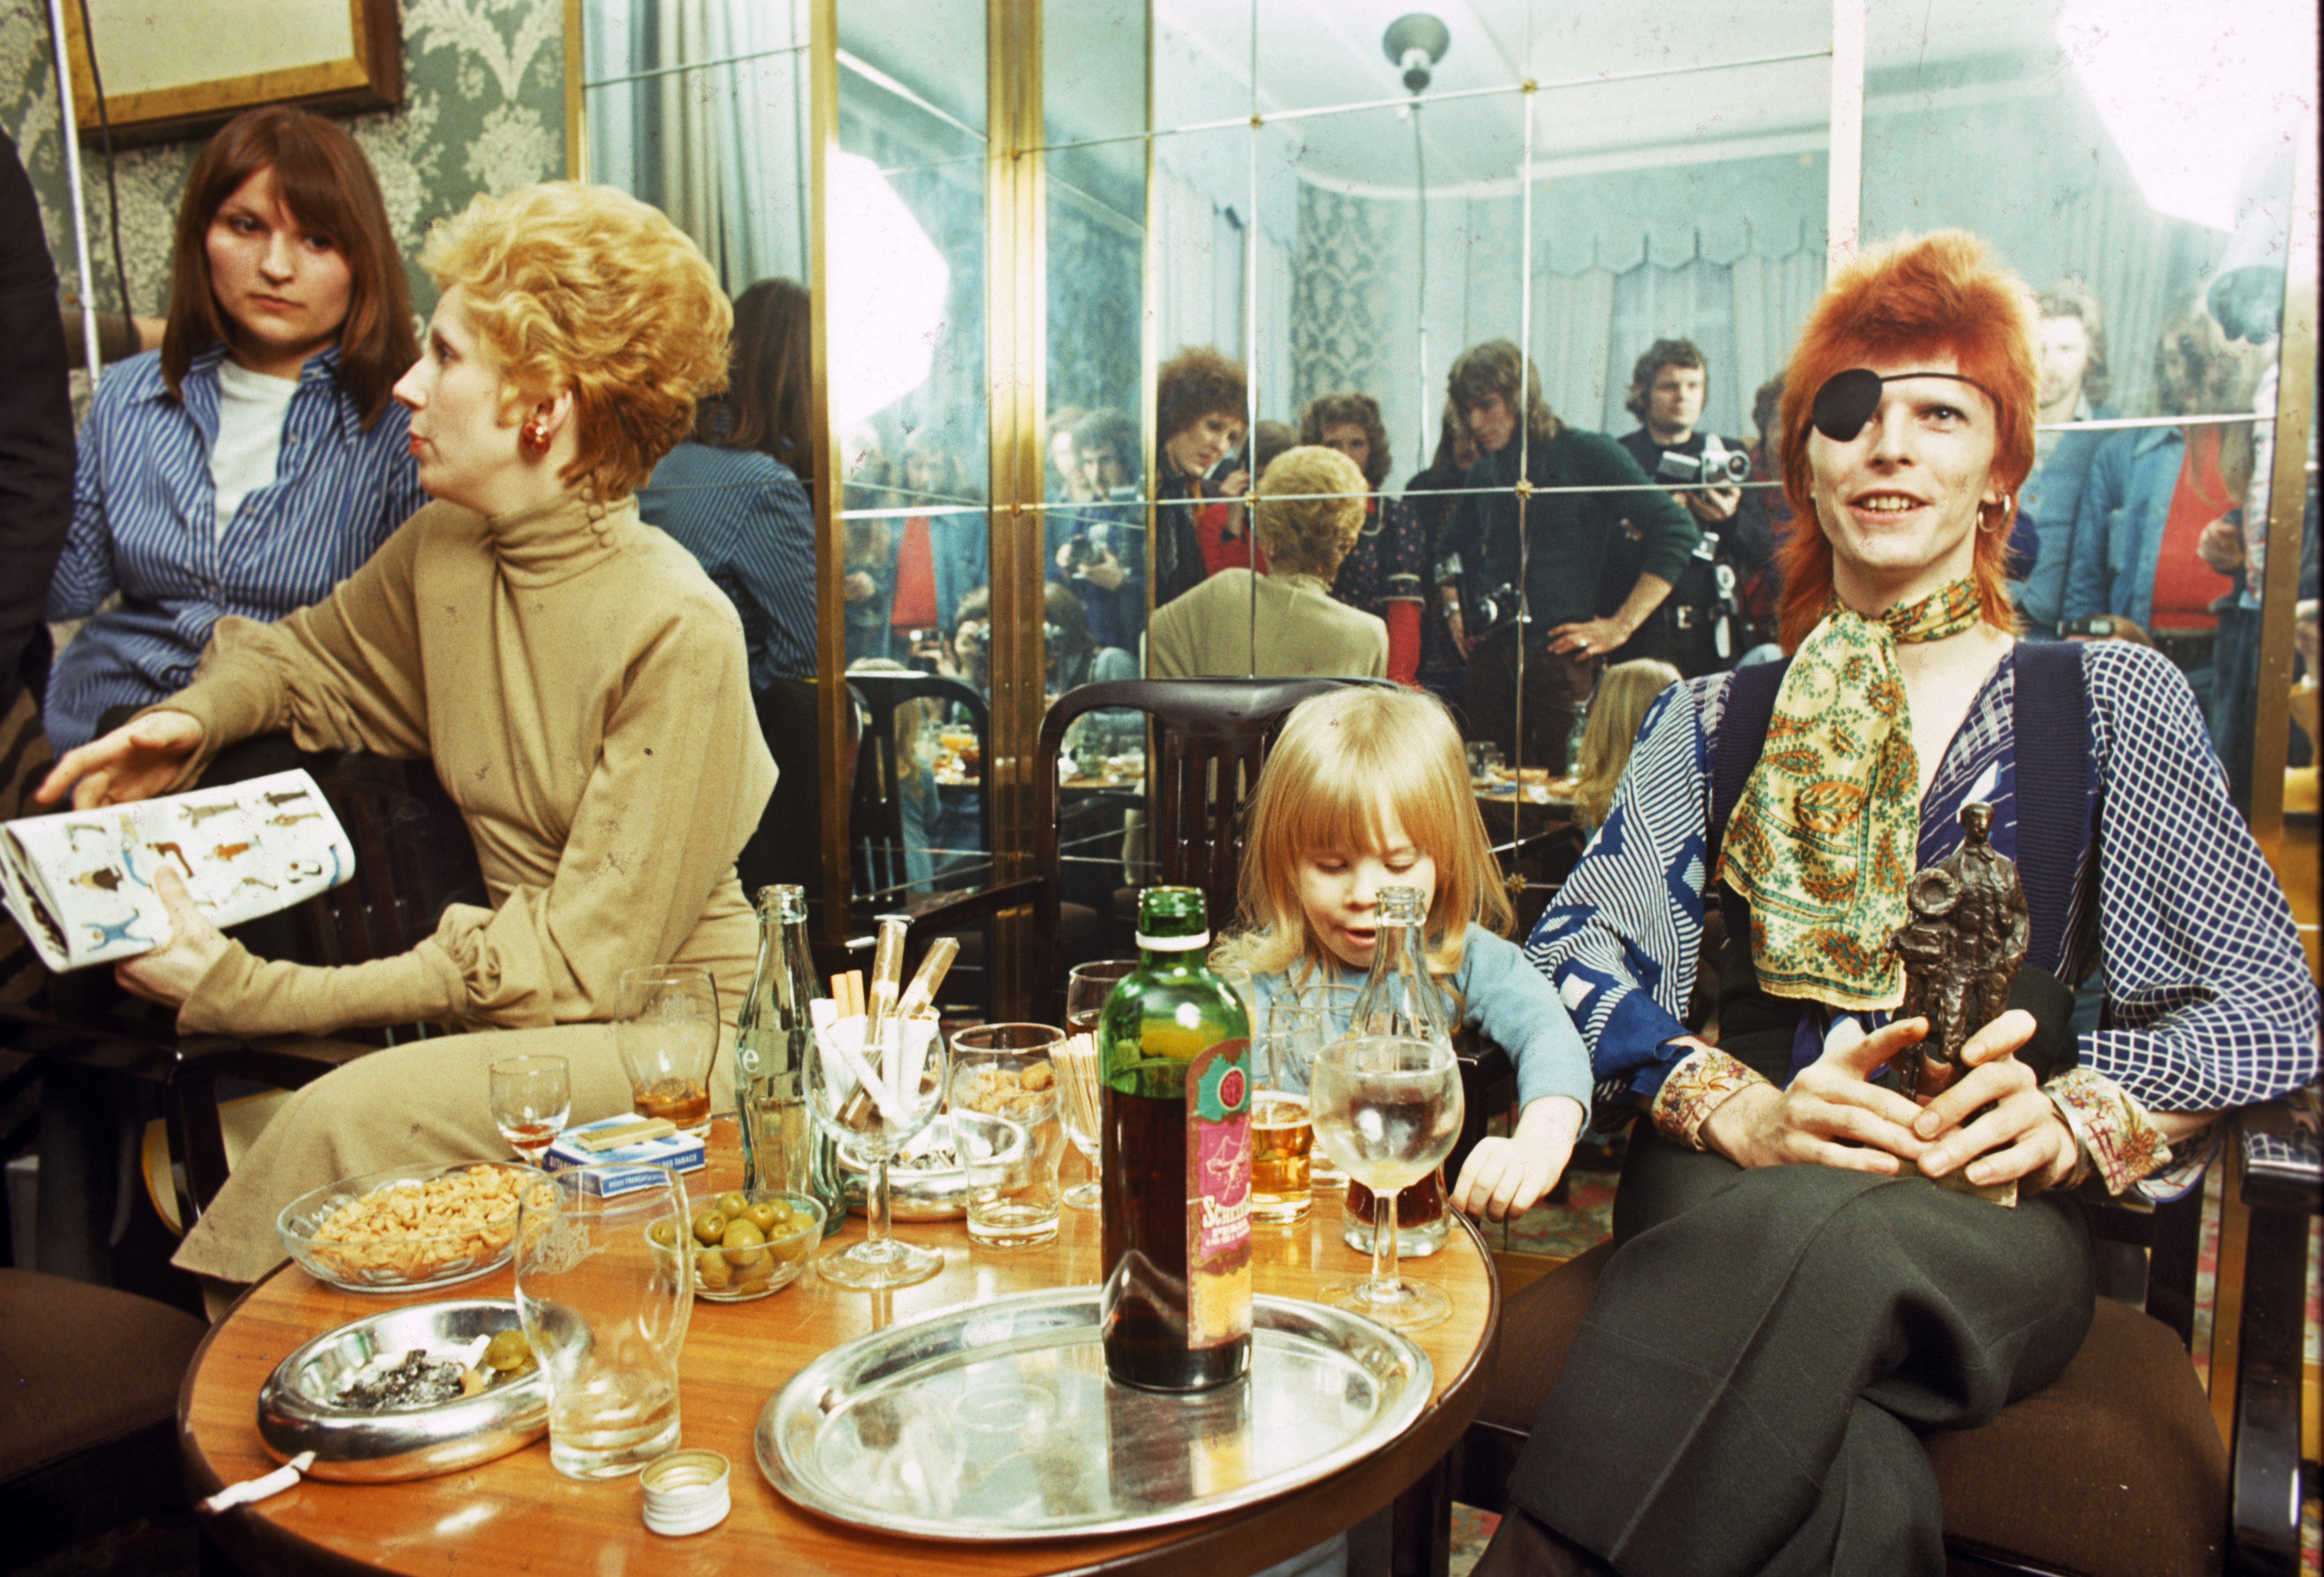 From left: Angie Bowie, his son Zowie Bowie (Duncan Jones) and David Bowie, appear at a press conference at the Amstel Hotel on Feb. 7, 1974 in Amsterdam, Netherlands.